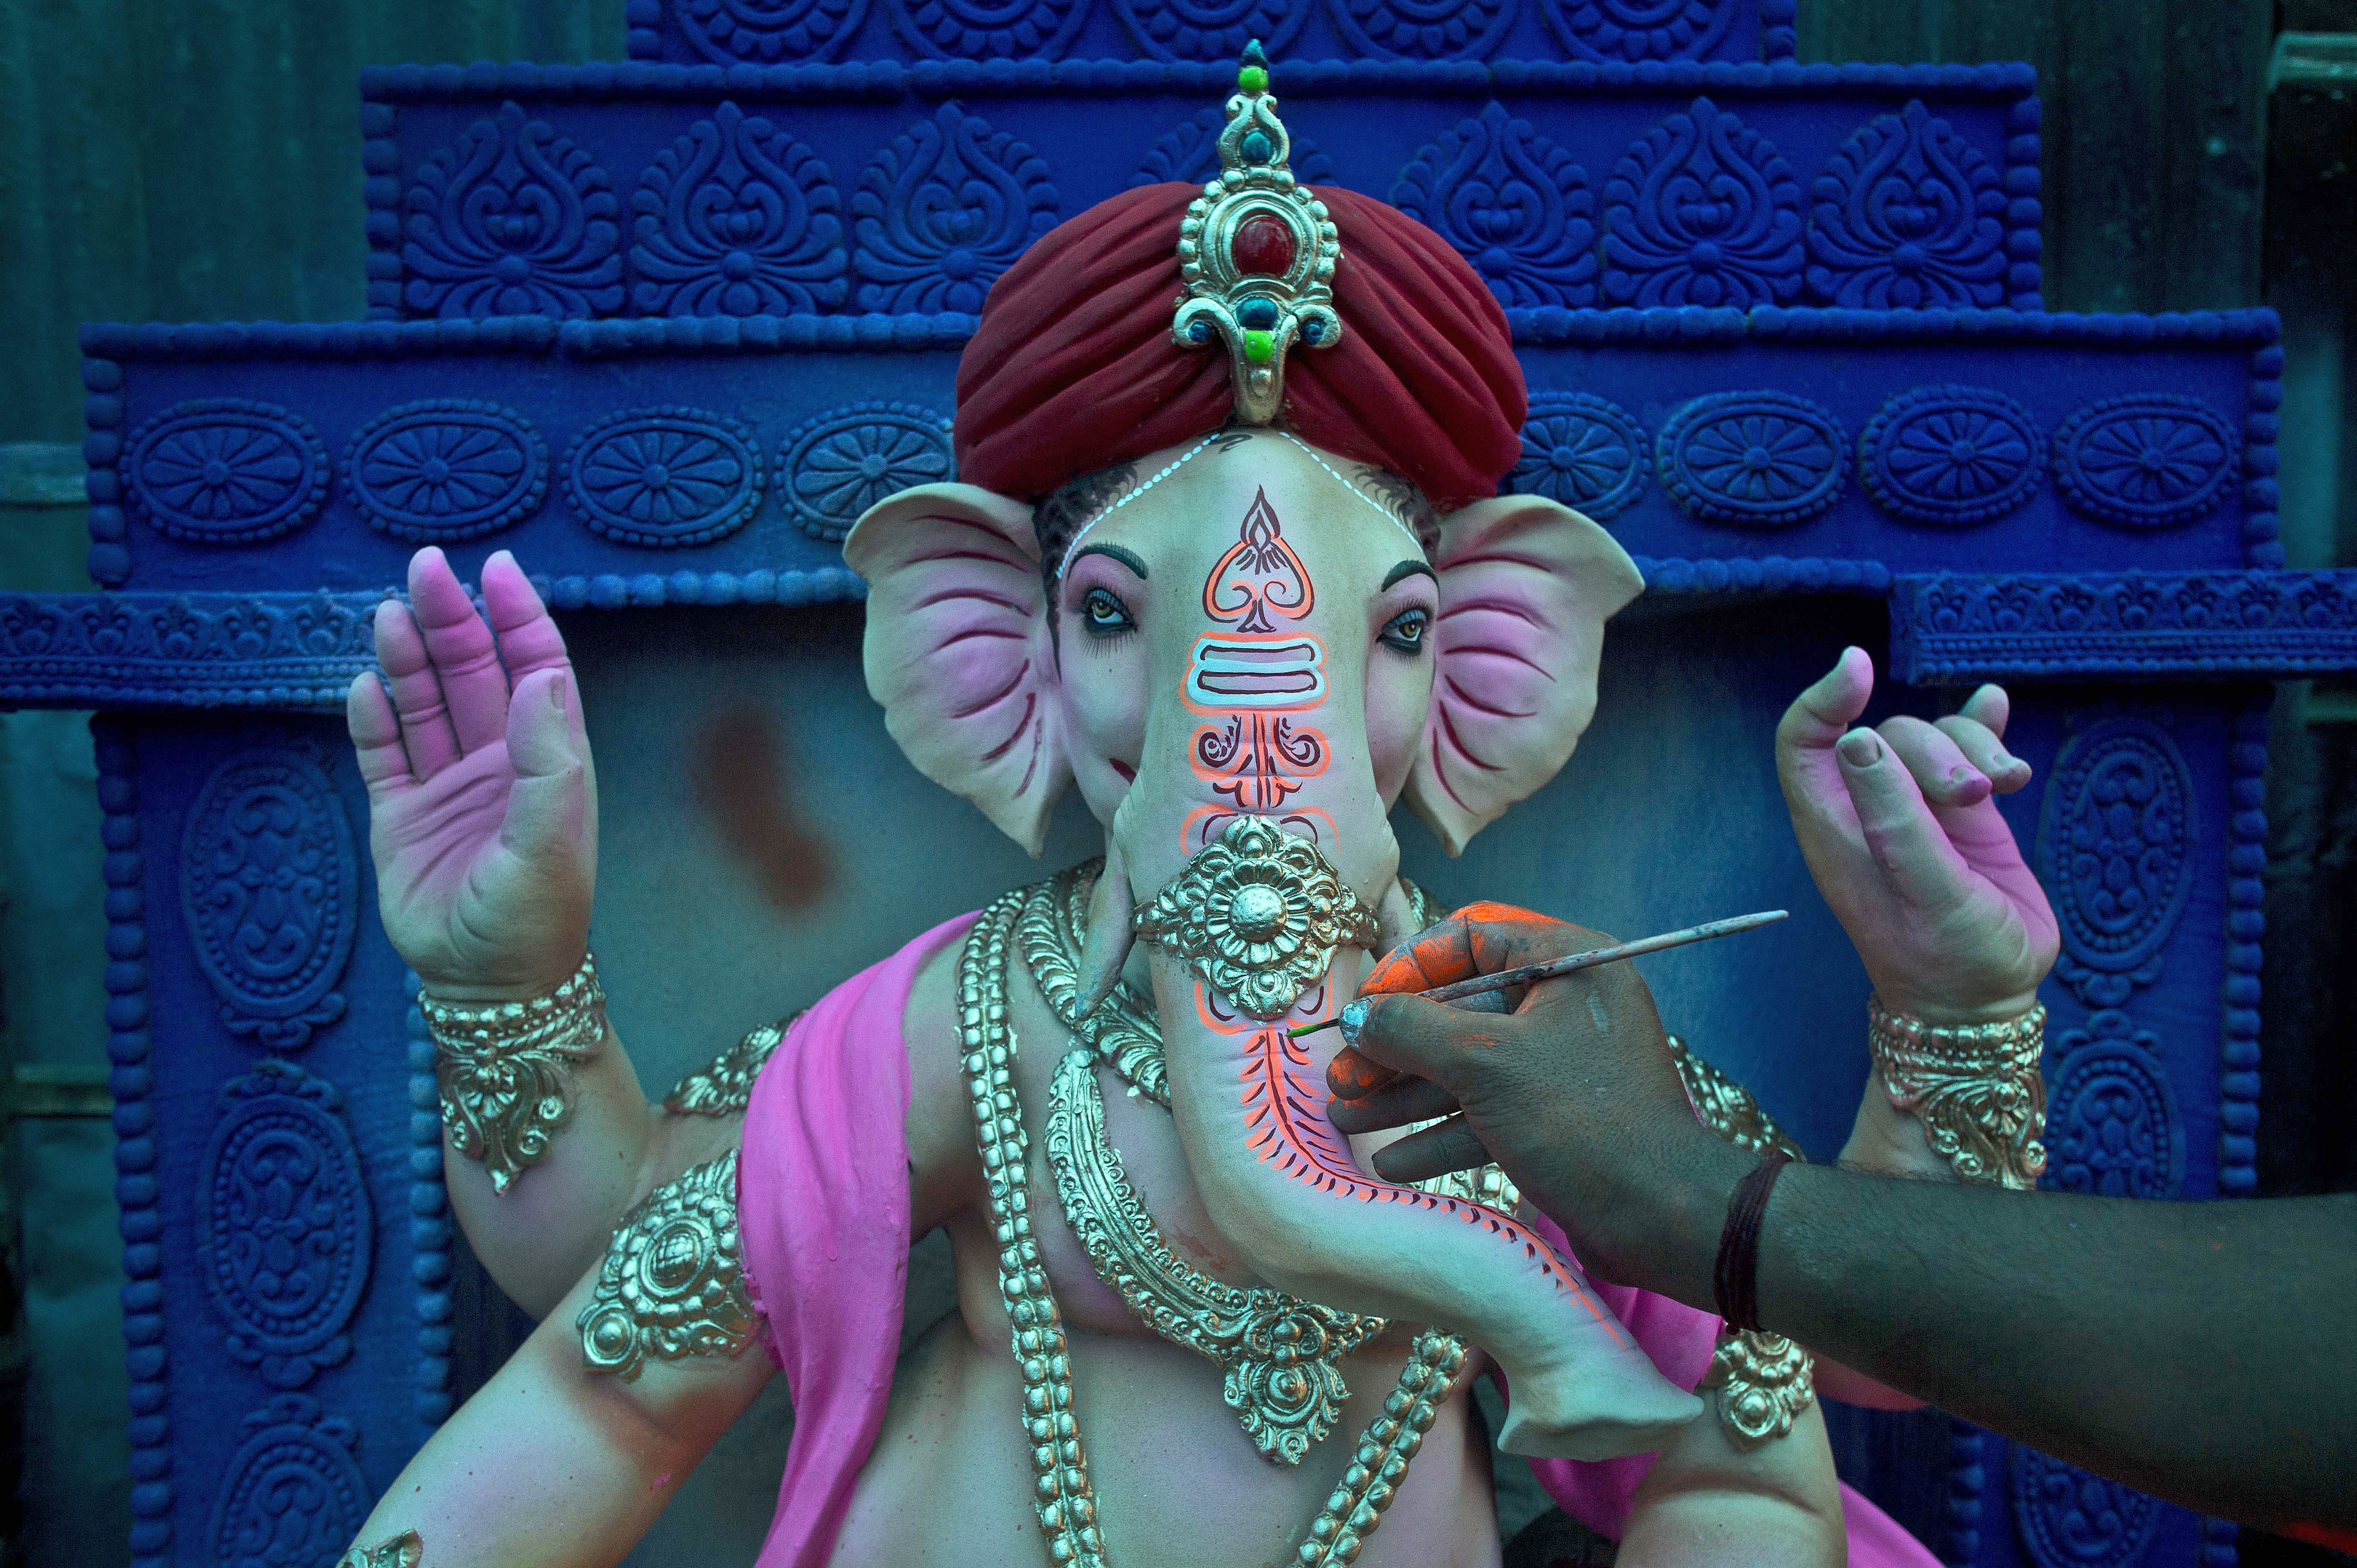 An artisan puts final touches on an idol of Hindu God Ganesha ahead of Ganesha Chaturthi at a workshop in Gauhati, India, Wednesday, Sept. 12, 2018. The ten-day long festival celebrating the birth of Ganesha begins Sept. 13. (AP Photo/Anupam Nath)